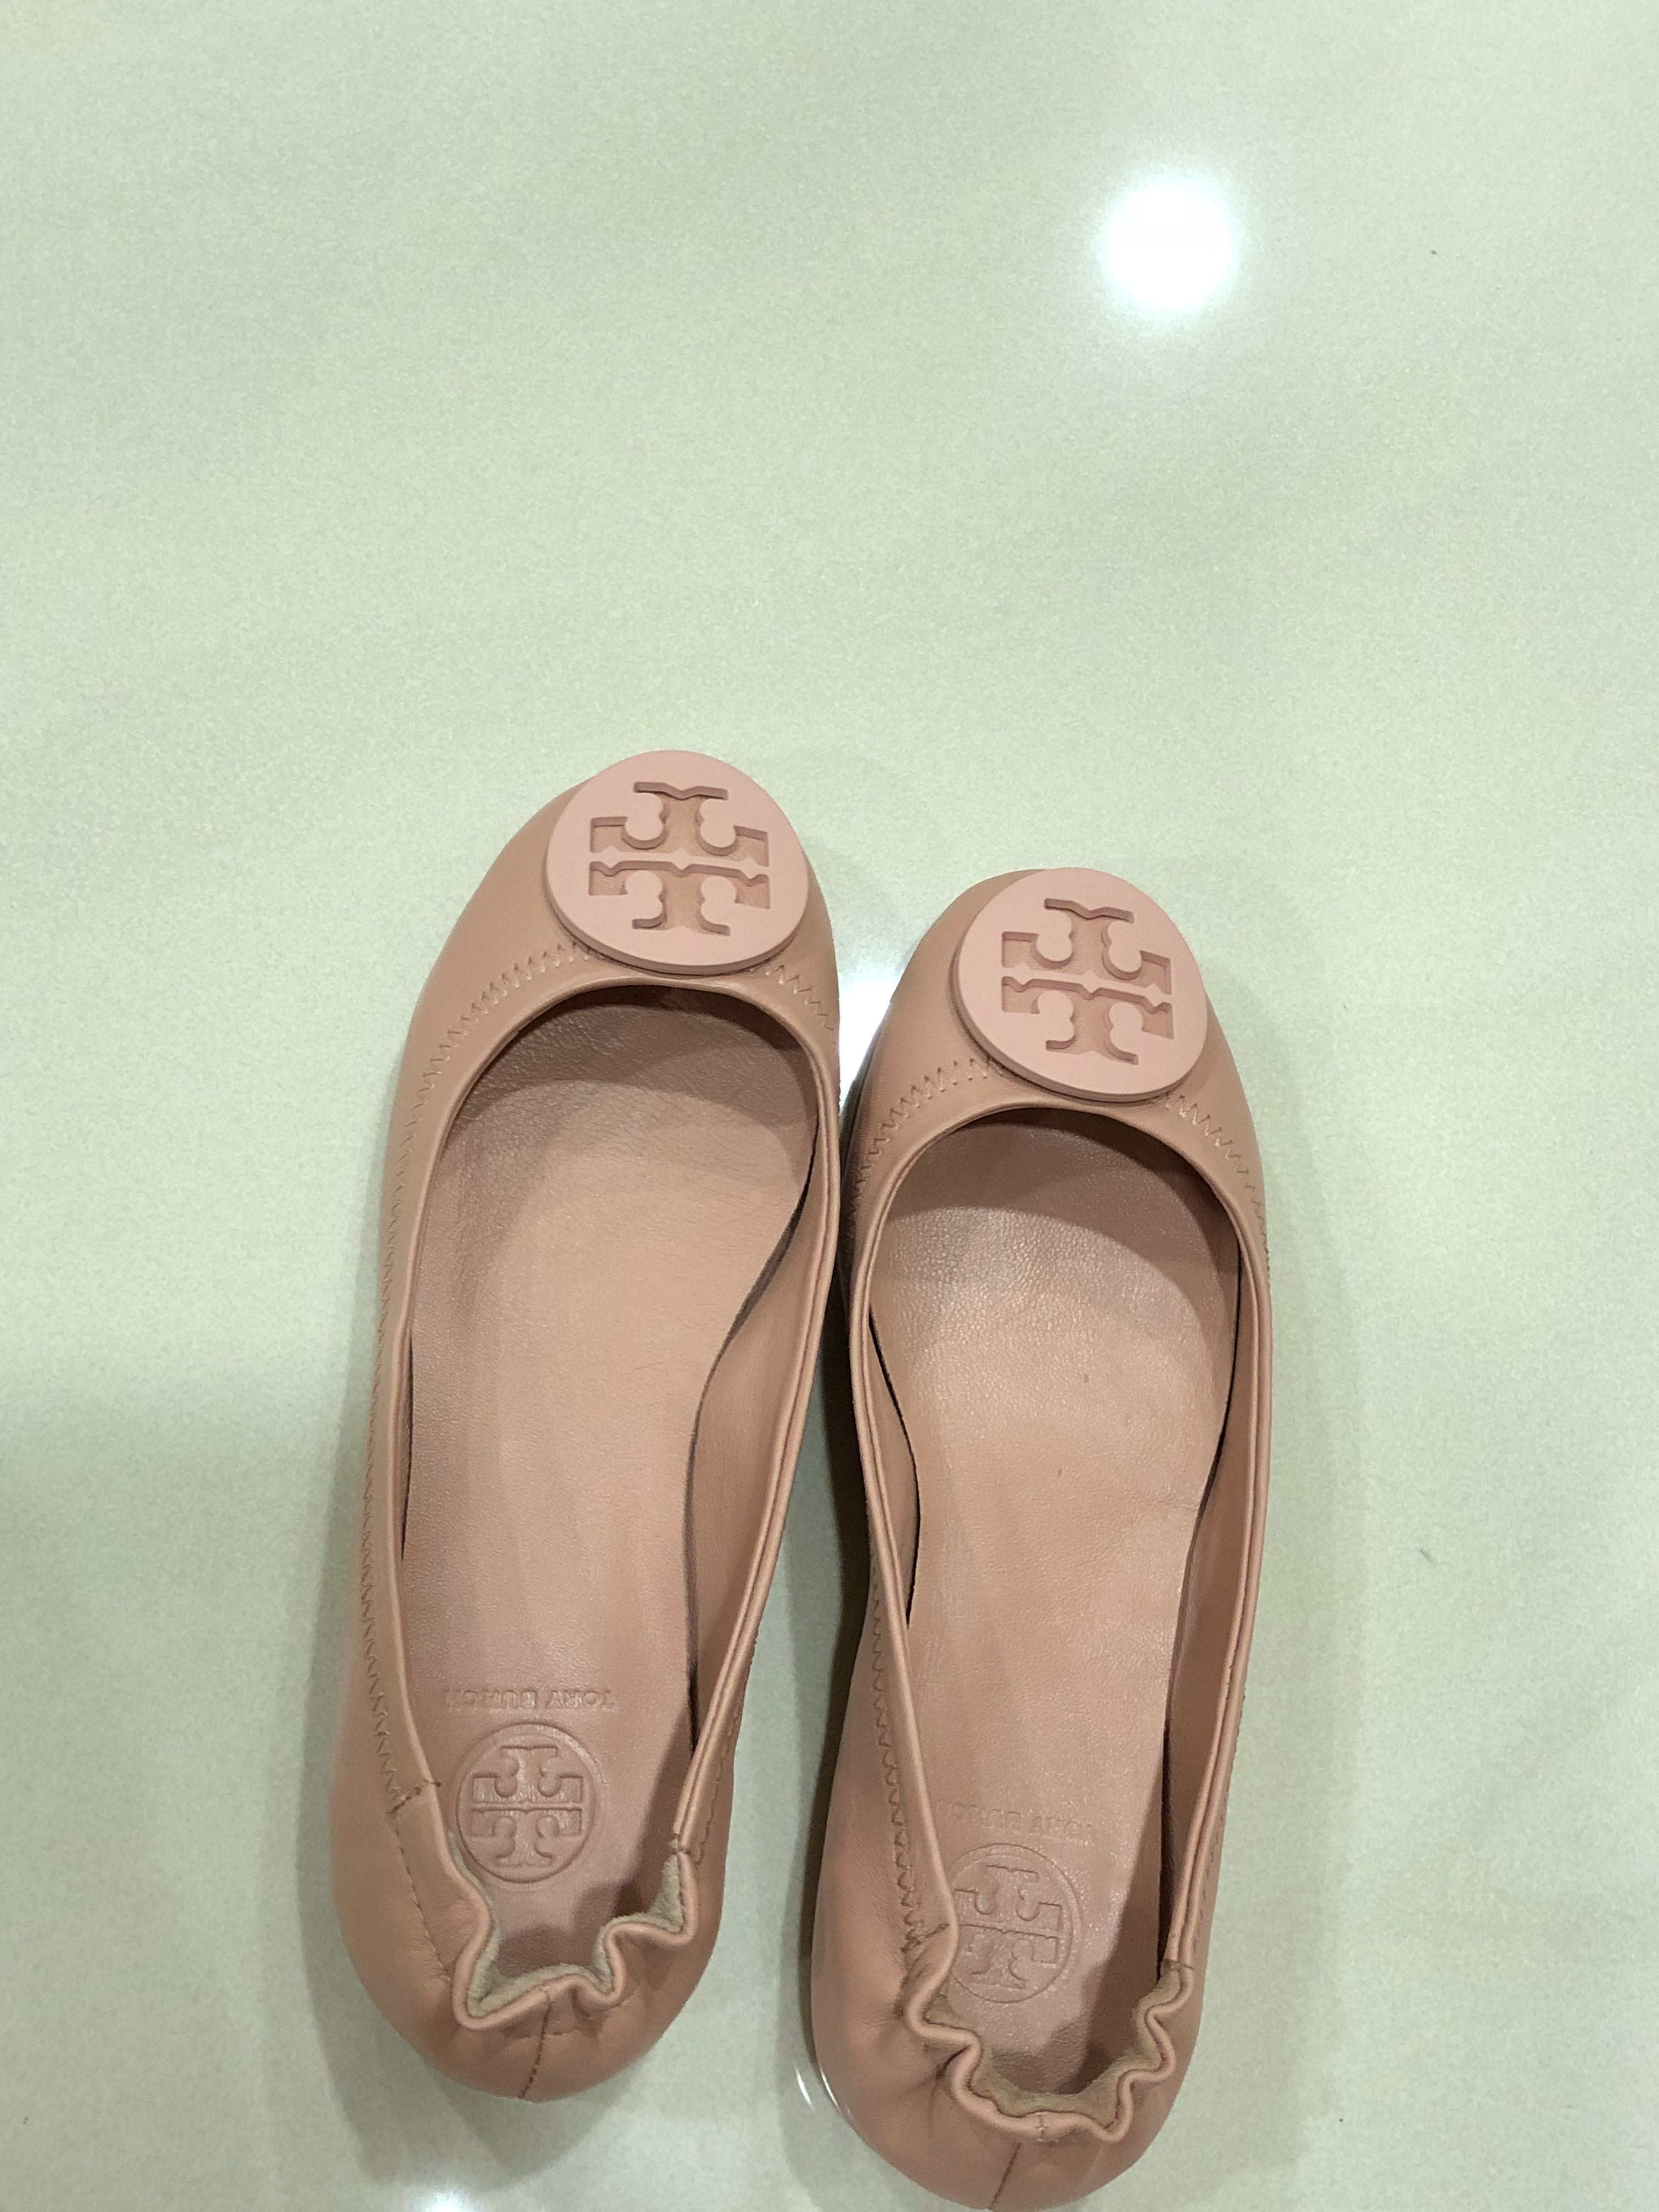 d8ee2dc9638 Tory Burch-inspired foldable flats